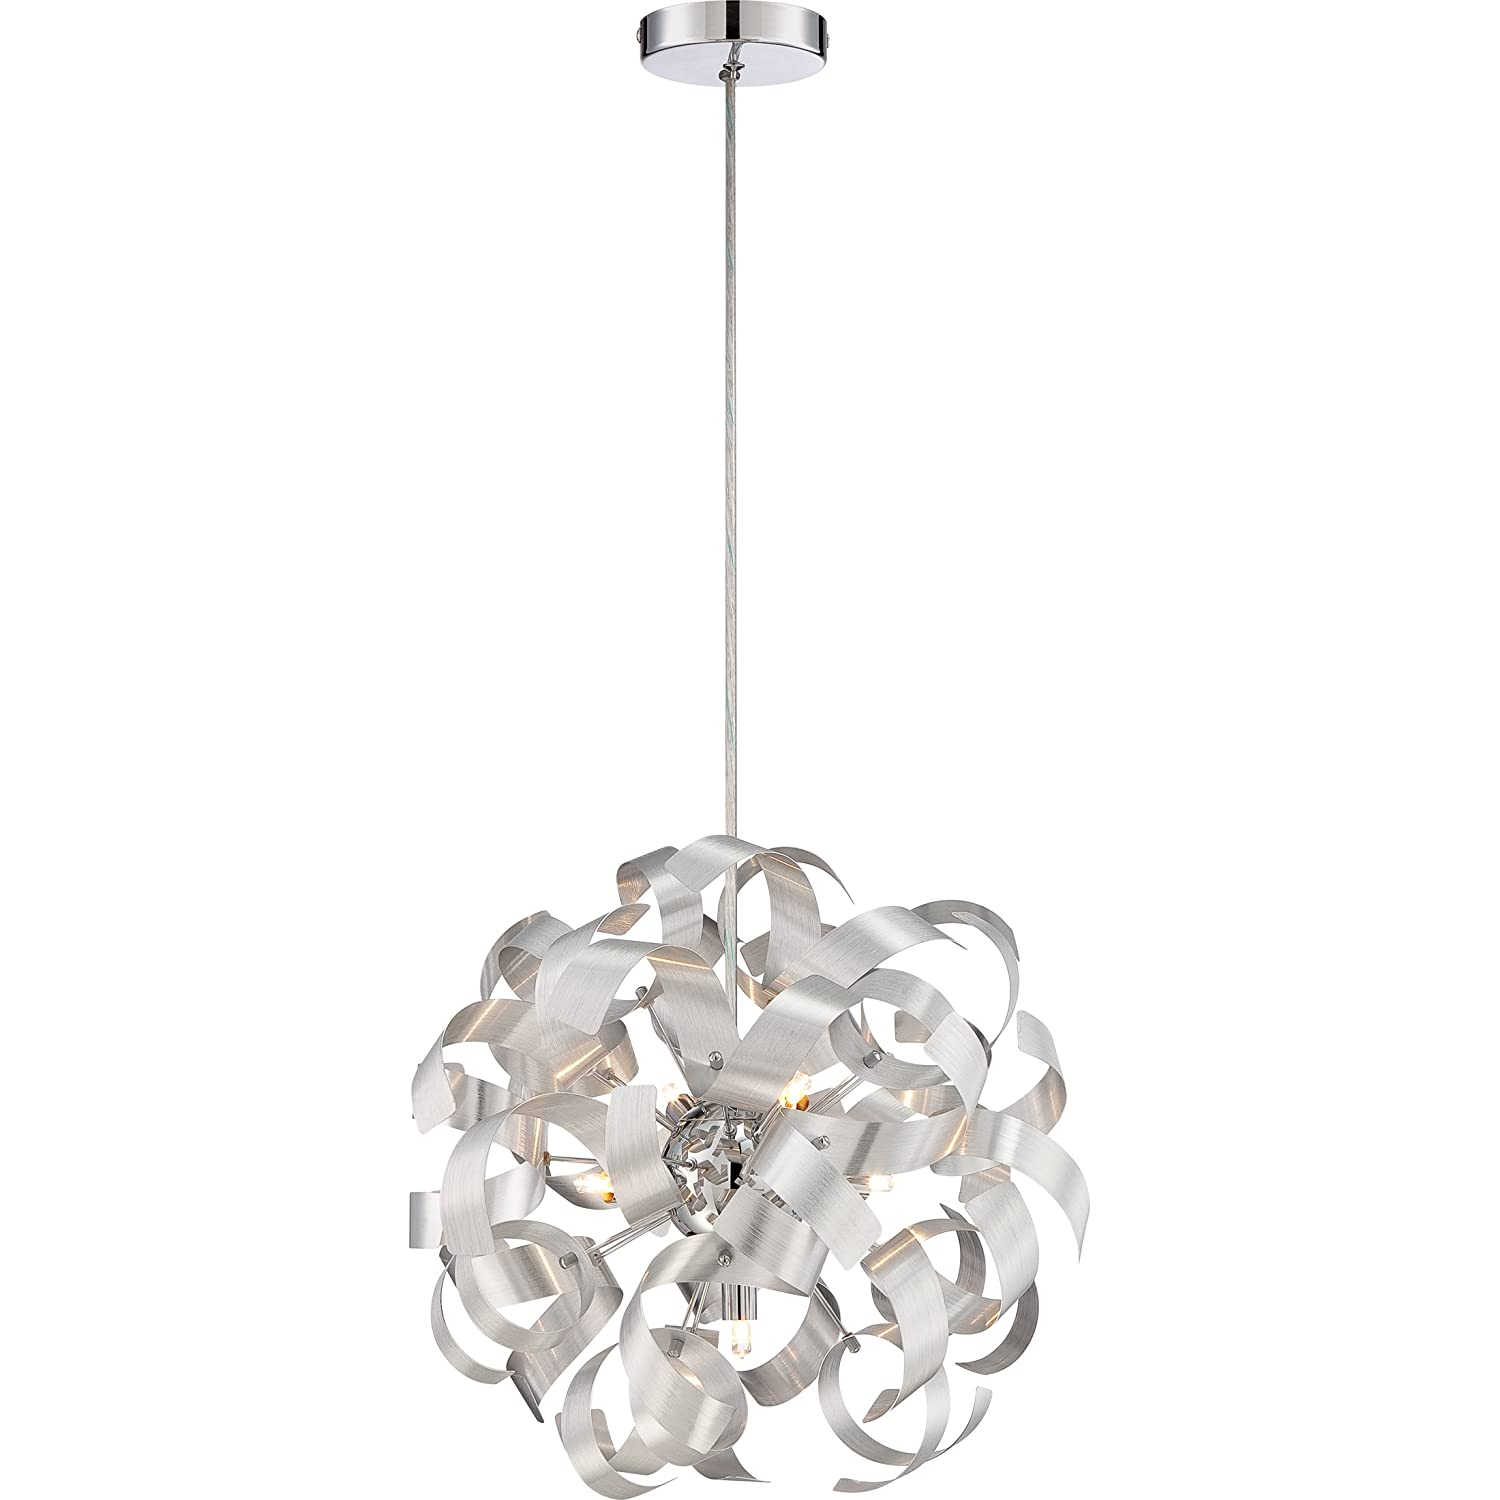 Quoizel RBN2817MN Ribbons with Millenia Finish Pendant and 5